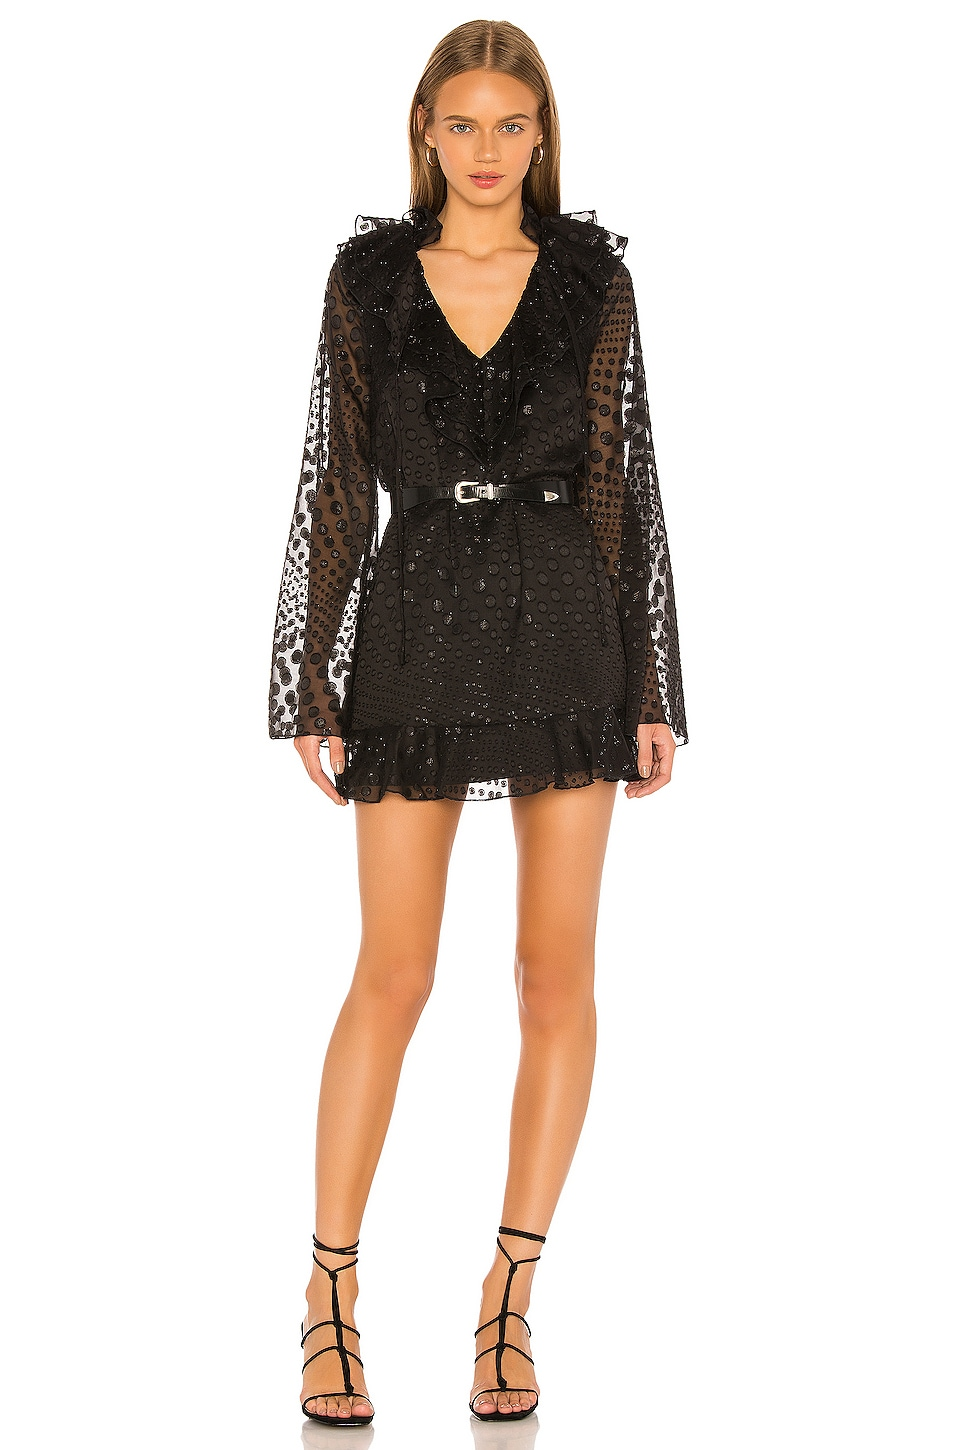 House of Harlow 1960 X REVOLVE Yalitza Mini Dress in Noir